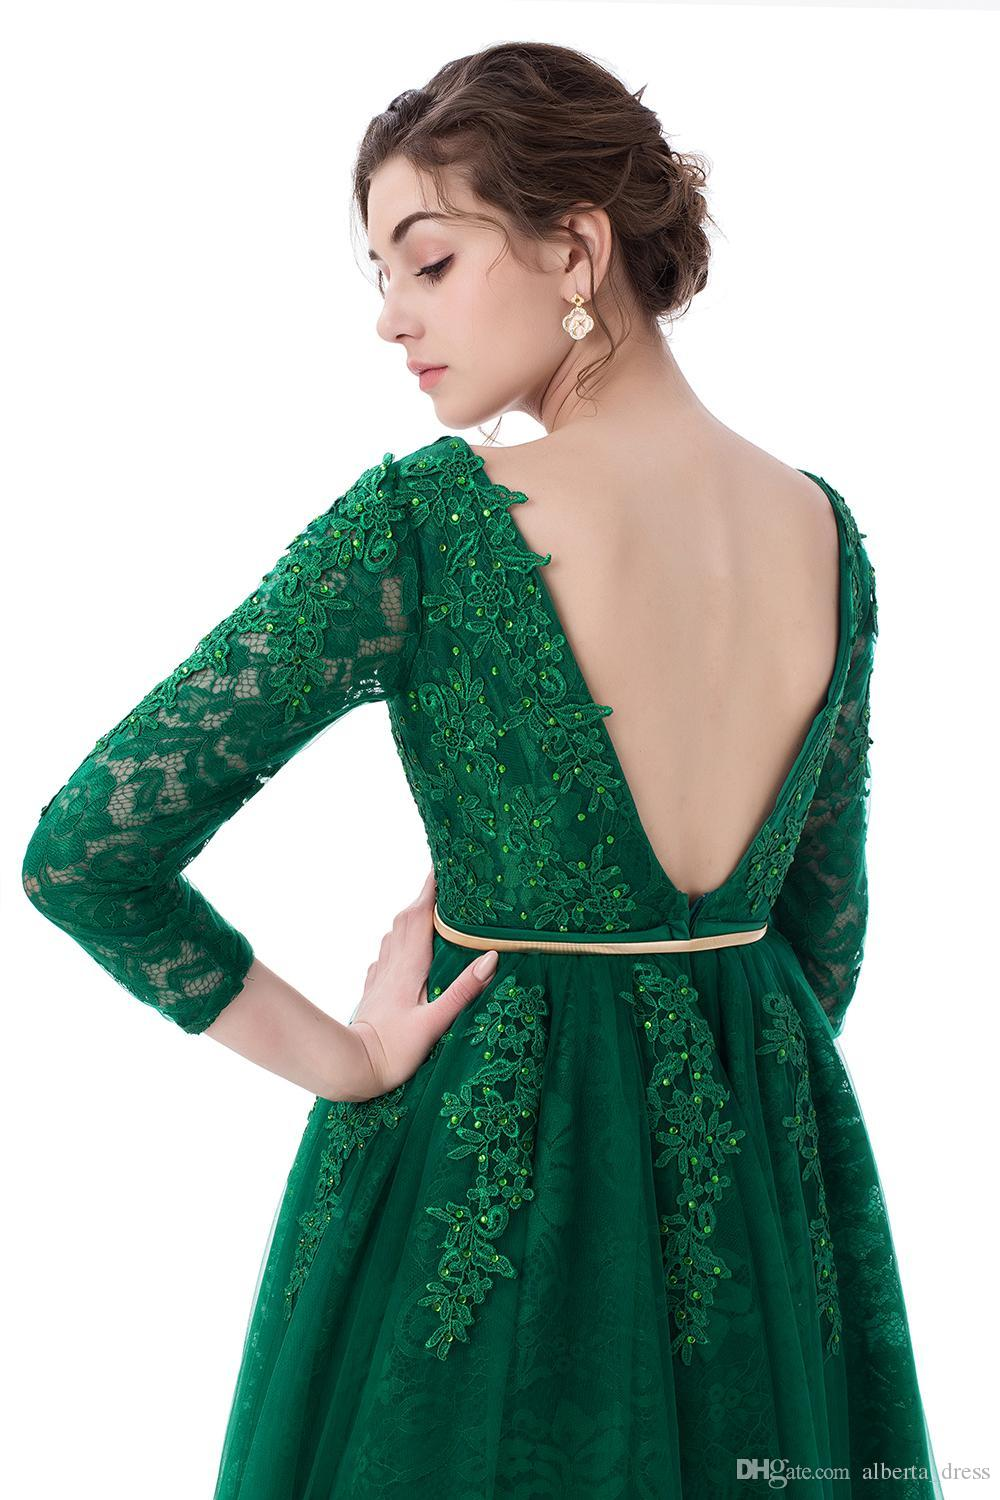 Fashio New Luxury Green Lace Evening Dresses The Bride Banquet A-line Long Sleeved Backless Party Gowns 2020 Custom Prom Dresses